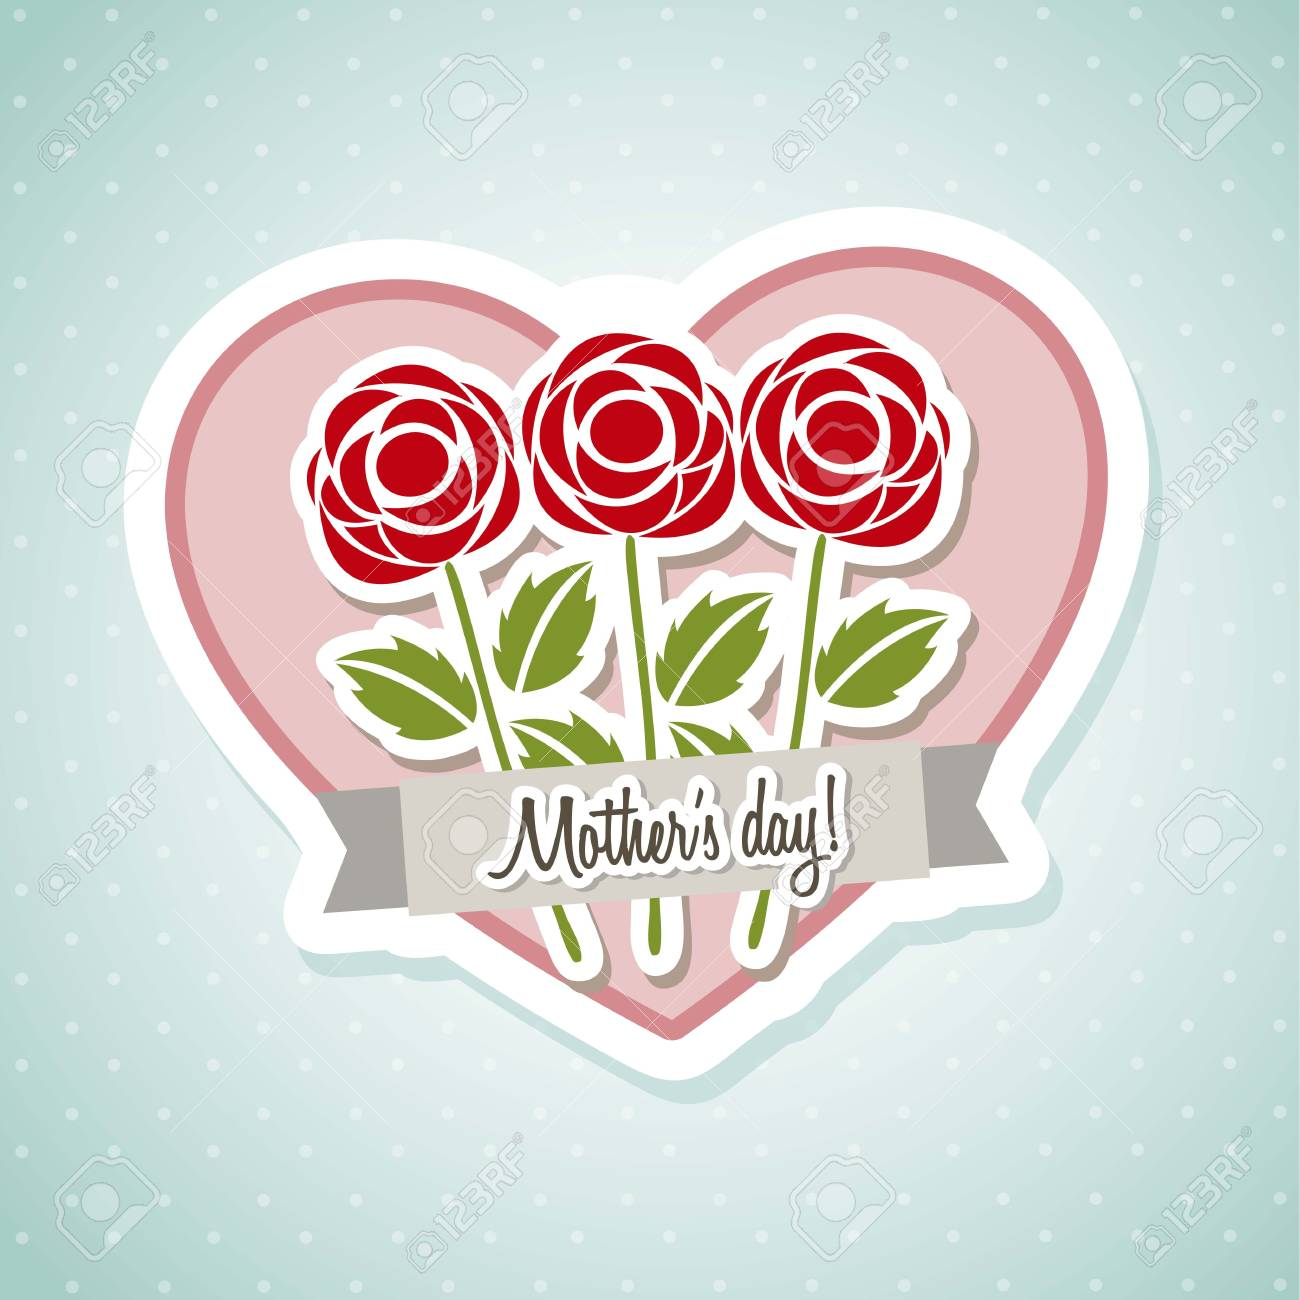 happy mothers day card with roses. illustration Stock Vector - 18555379